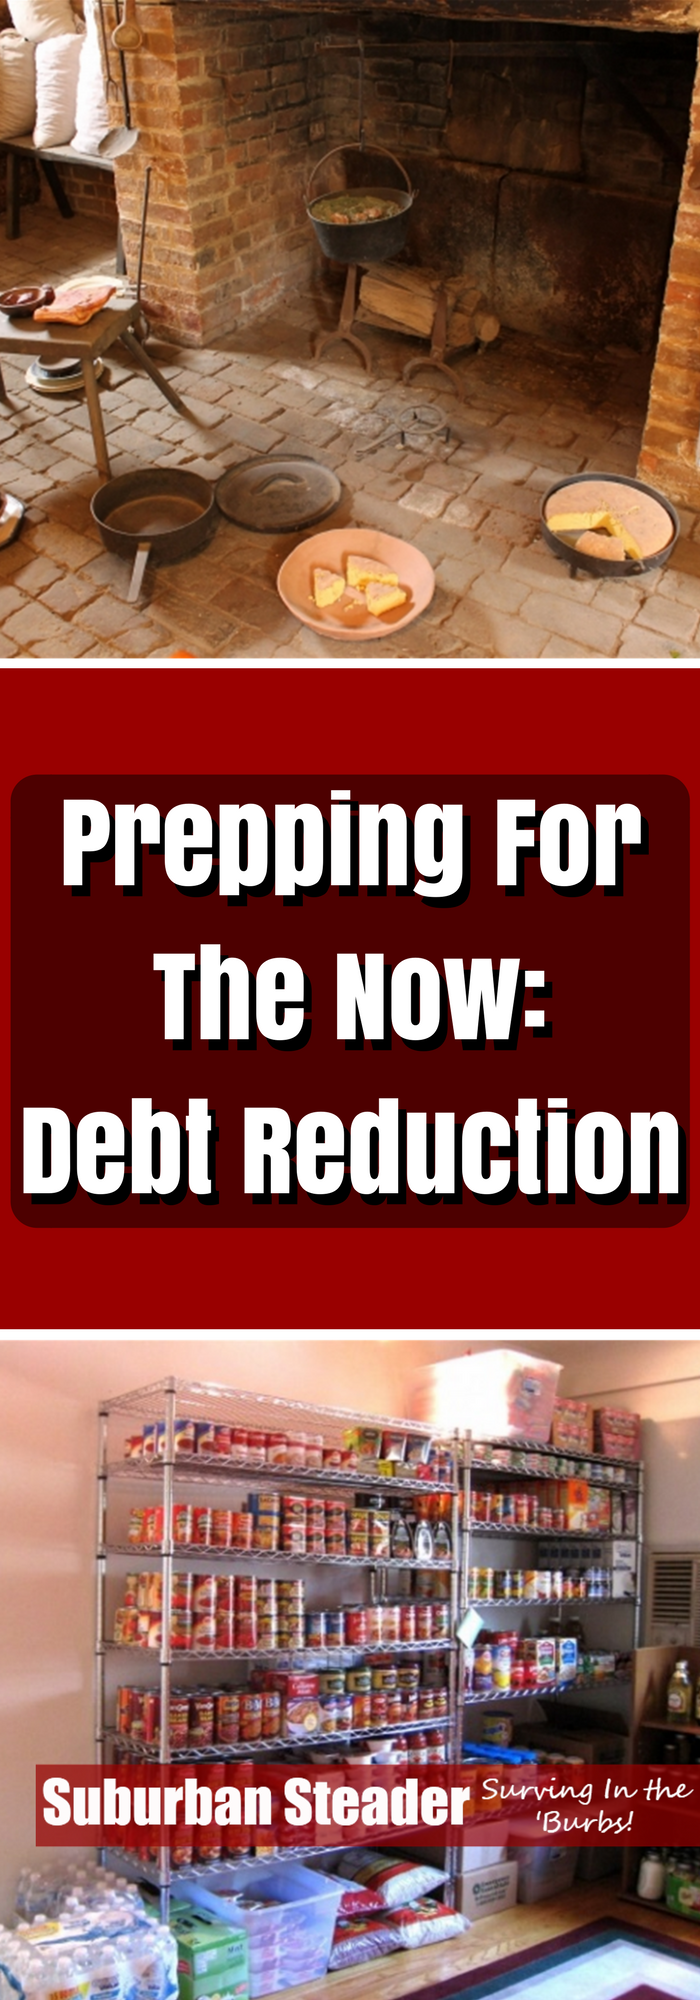 Have you thought about finances and debt reduction as a prepping approach? Guest poster Gale Newell runs through Prepping For The Now in today's post.